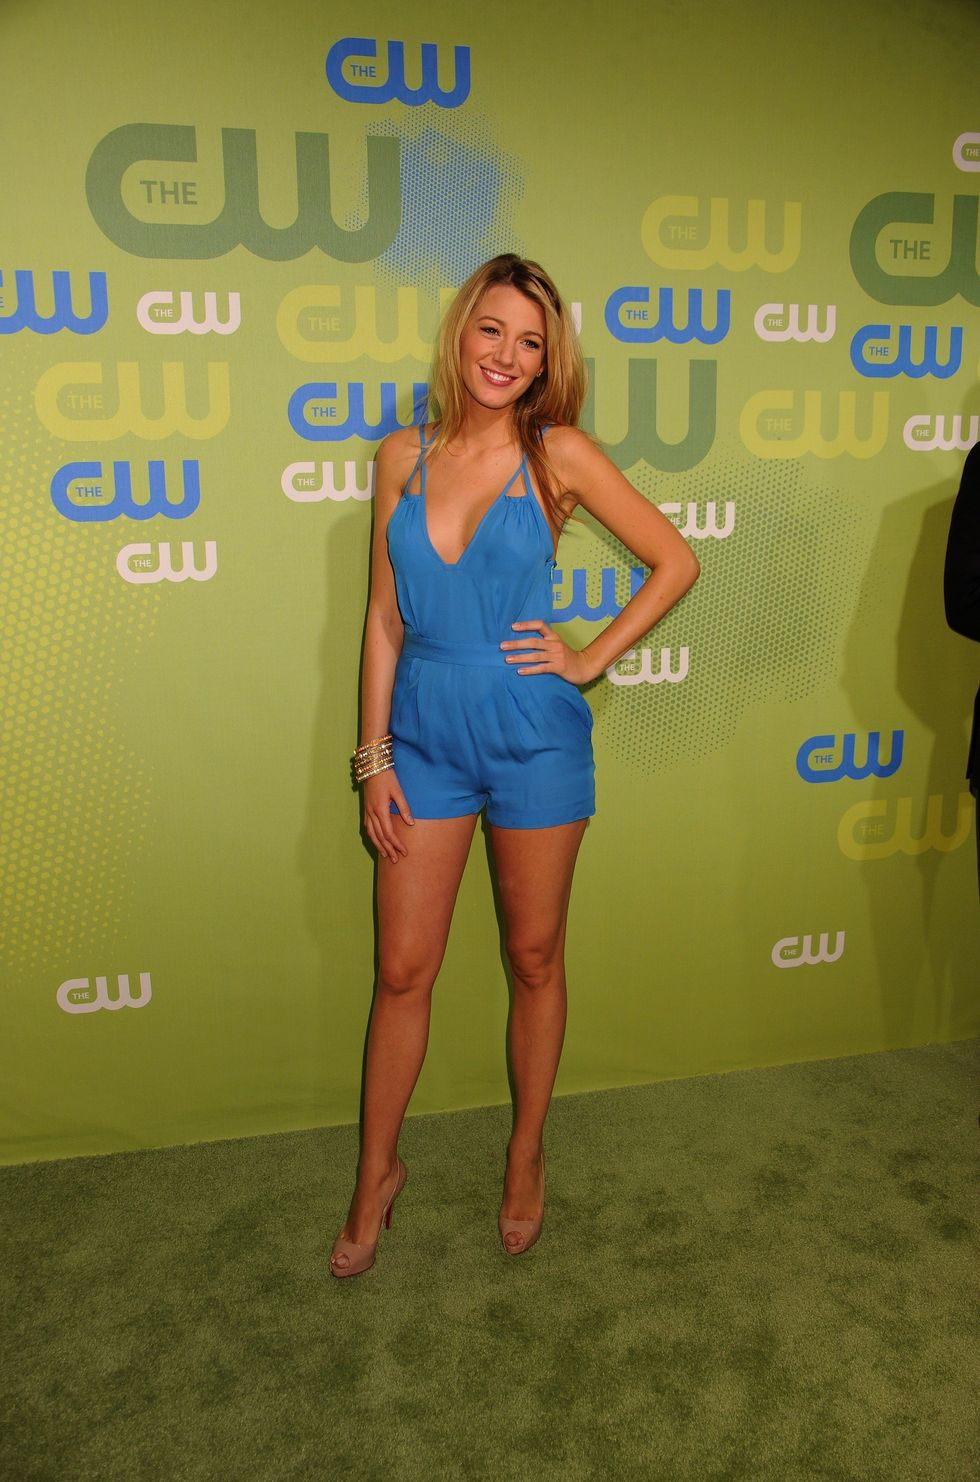 blake-lively-2009-the-cw-network-upfront-in-new-york-12